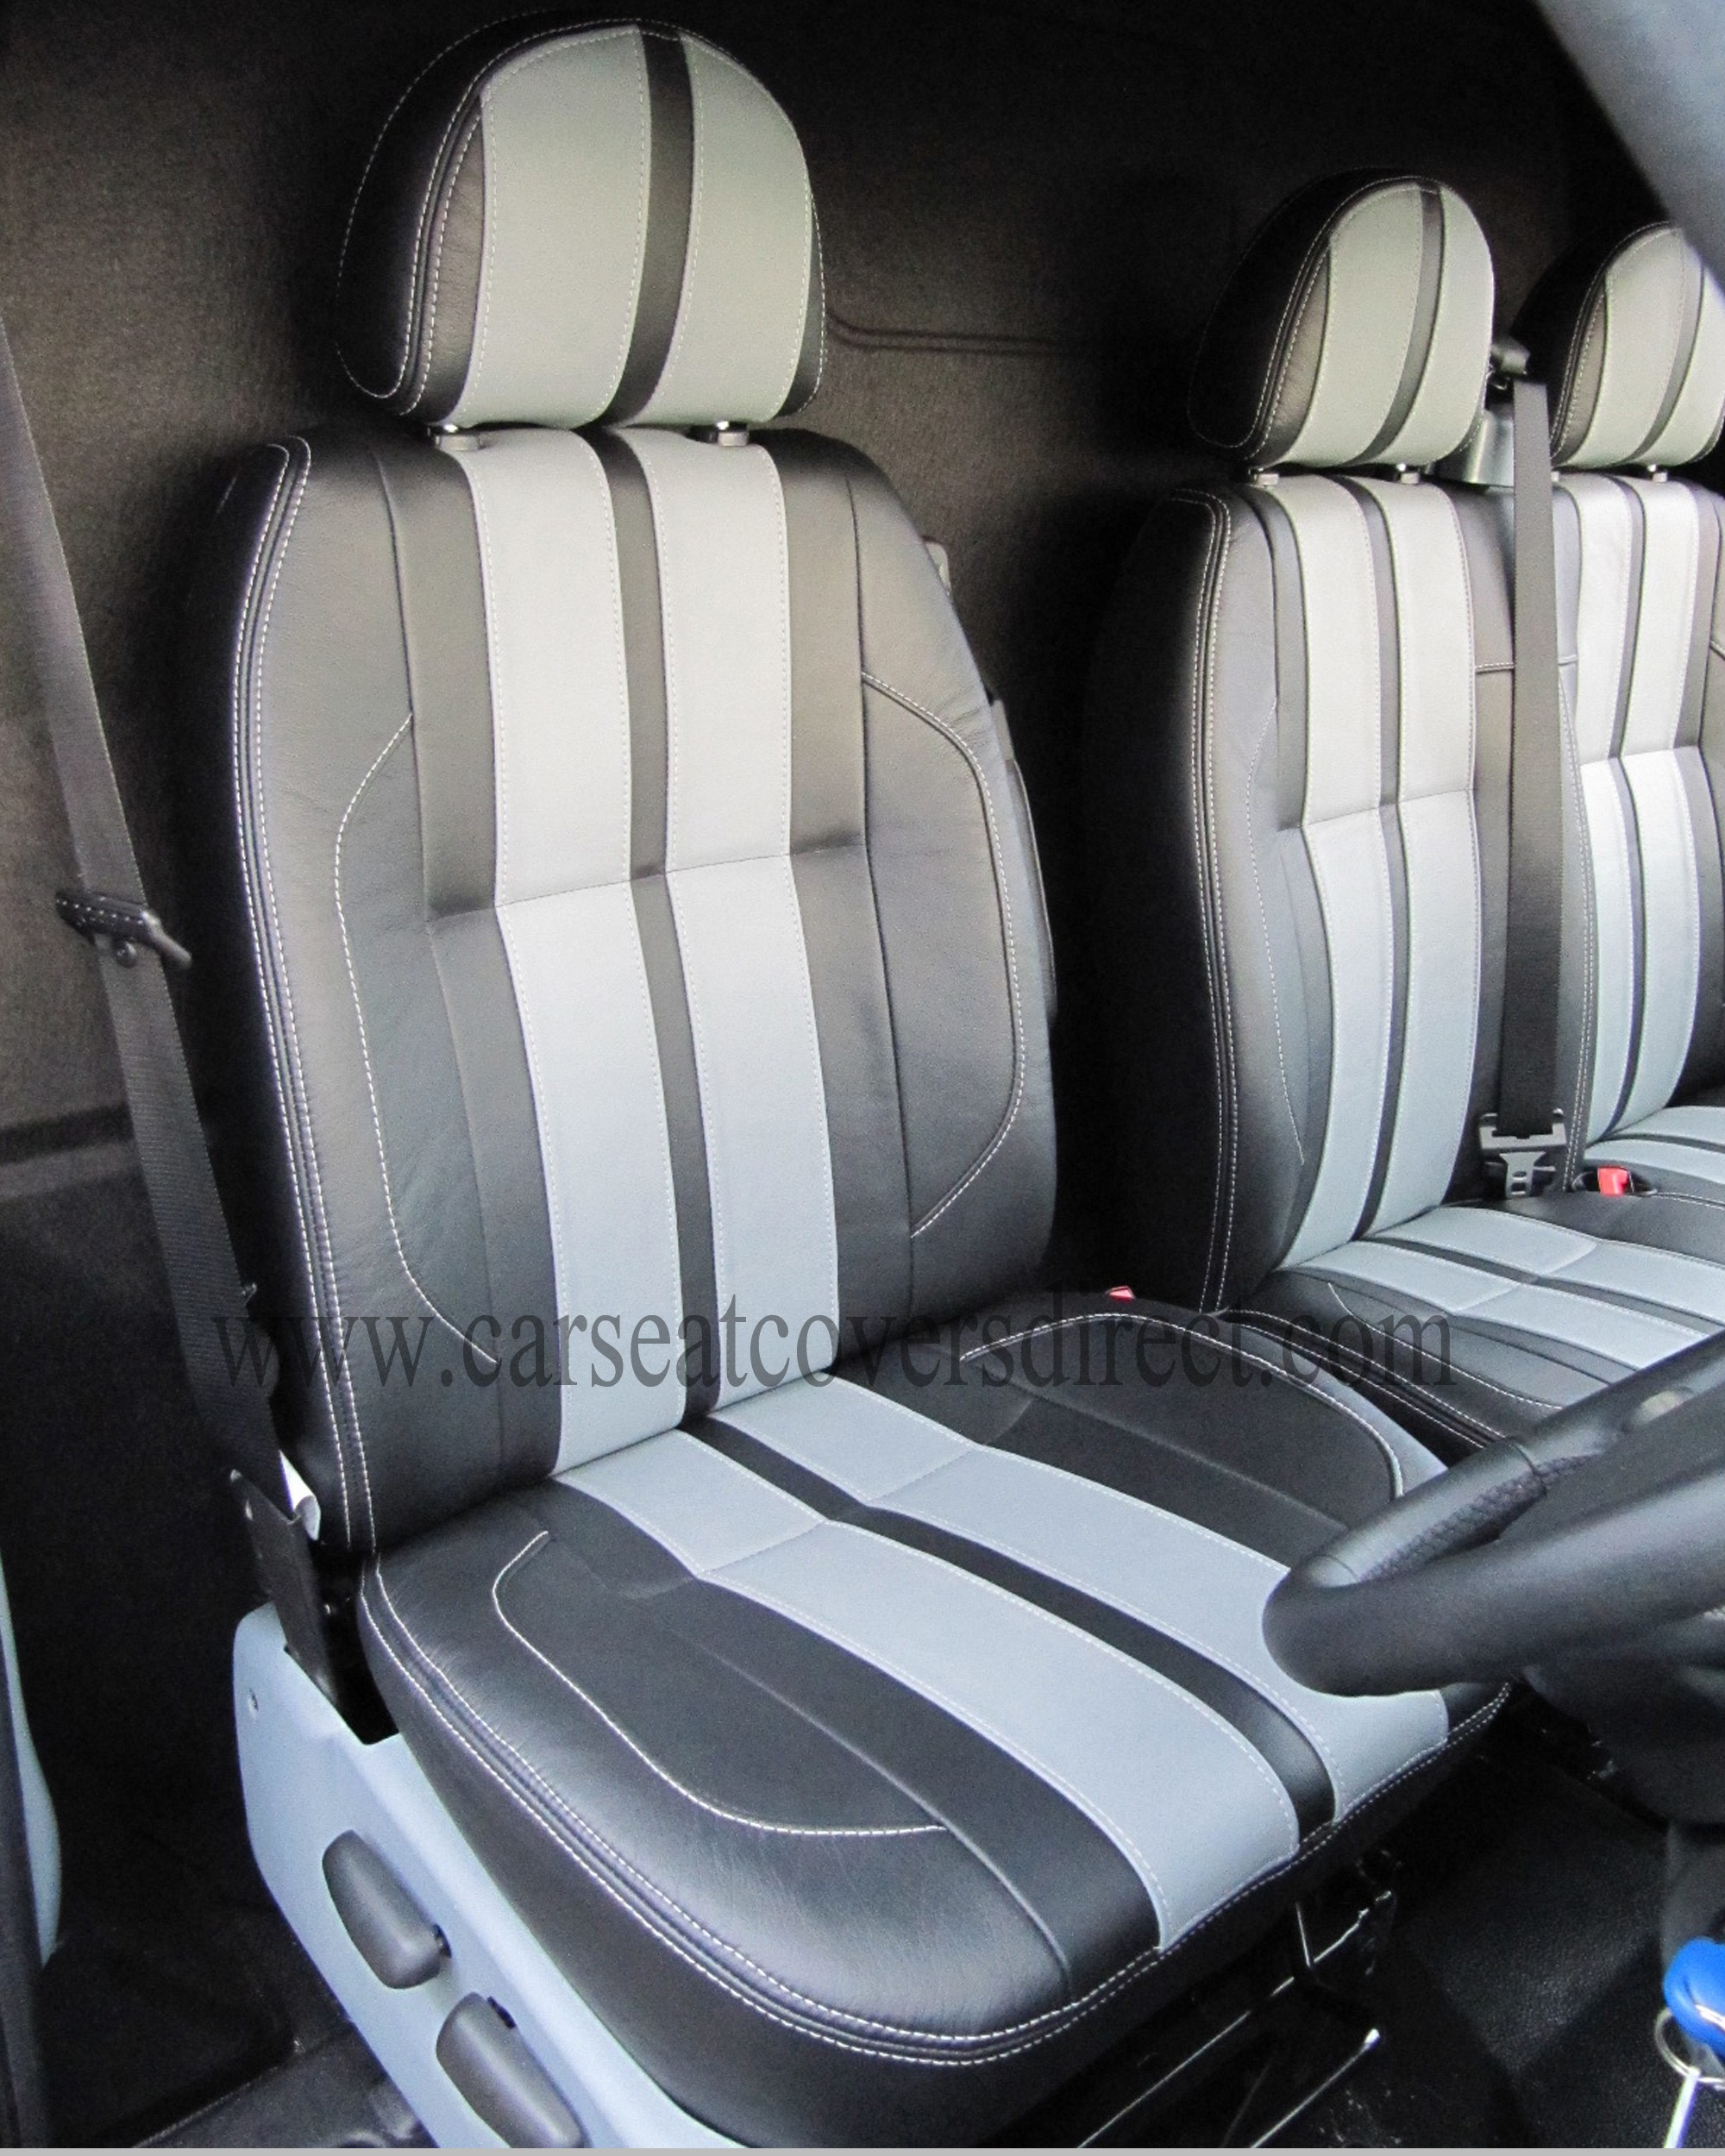 FORD TRANSIT 5th Gen Custom Made LEATHER RETRIM. 2 Tone leather Sport Line Design.